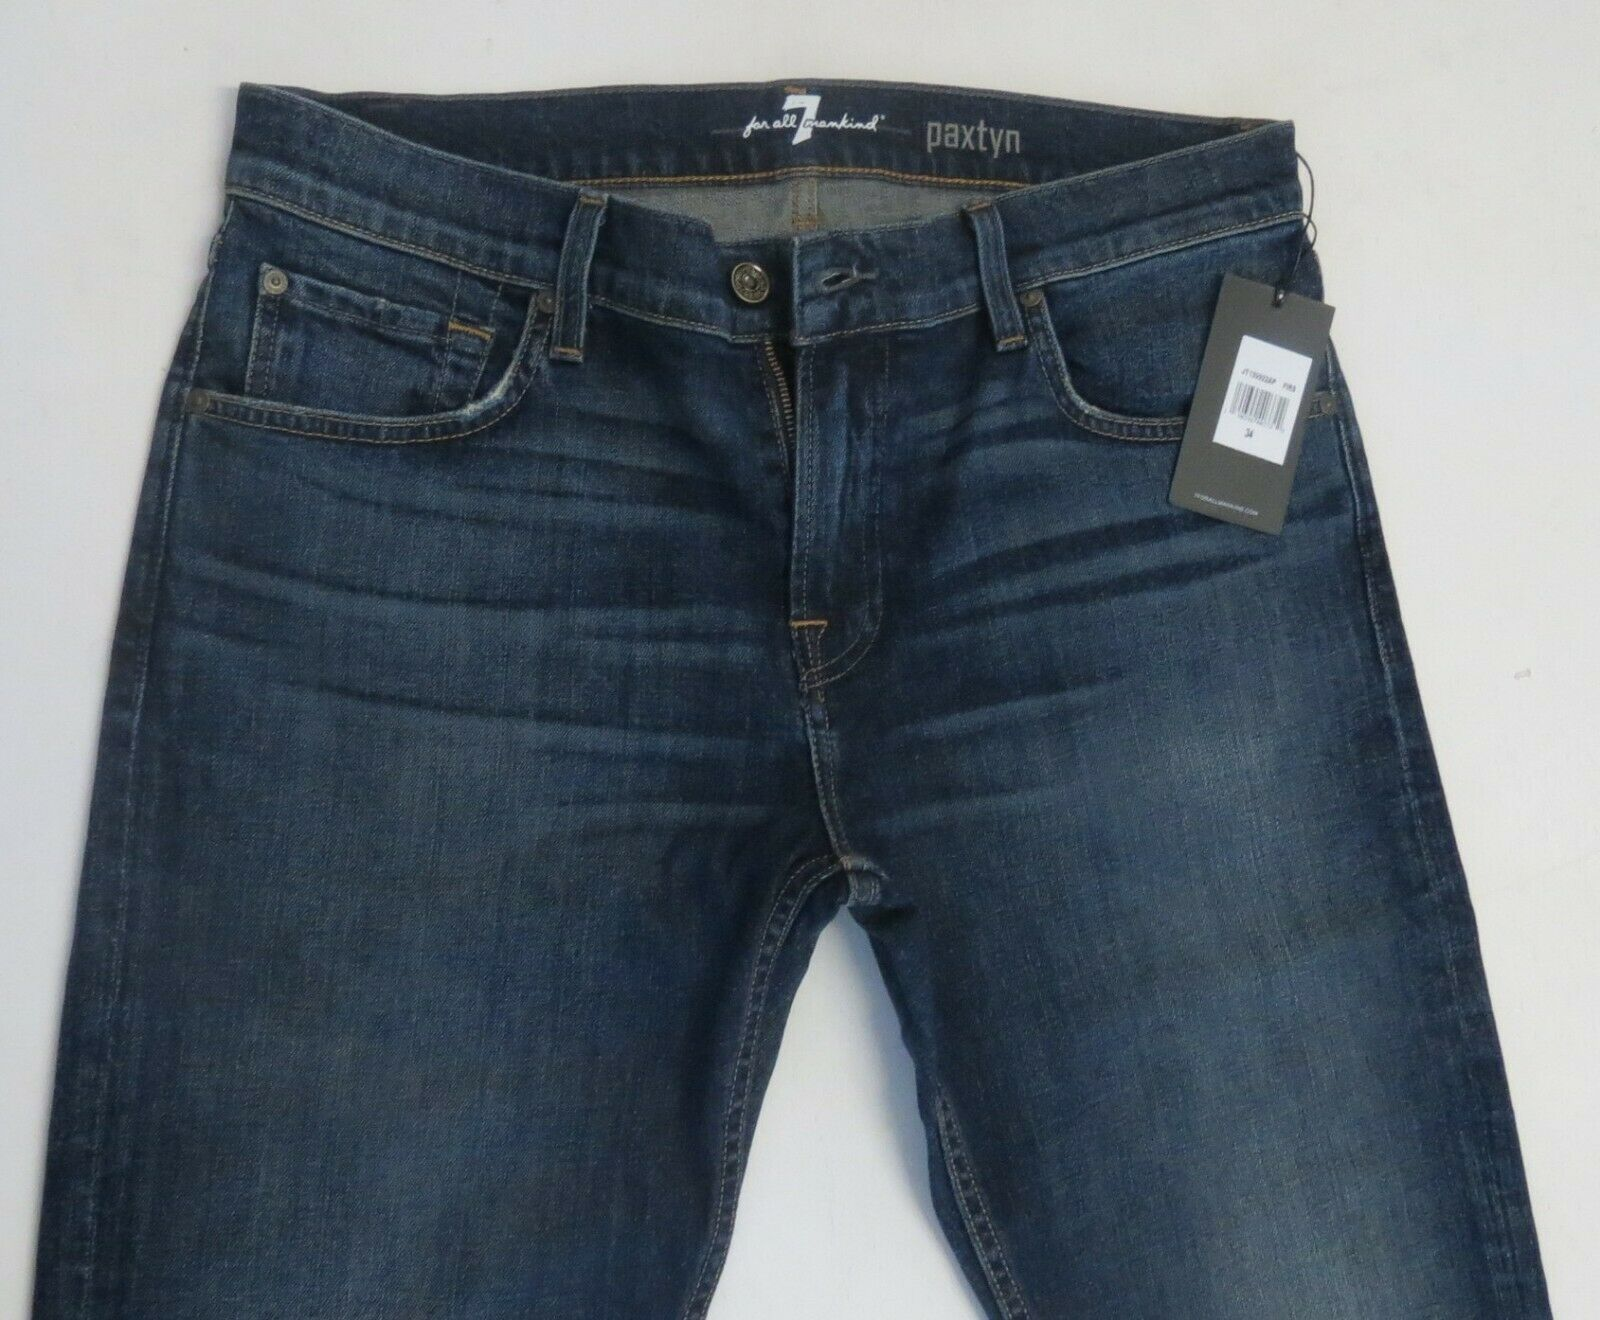 7 For All Mankind Men 34 W x 34 Paxtyn Firs Stretch Jeans Brand New with Tags